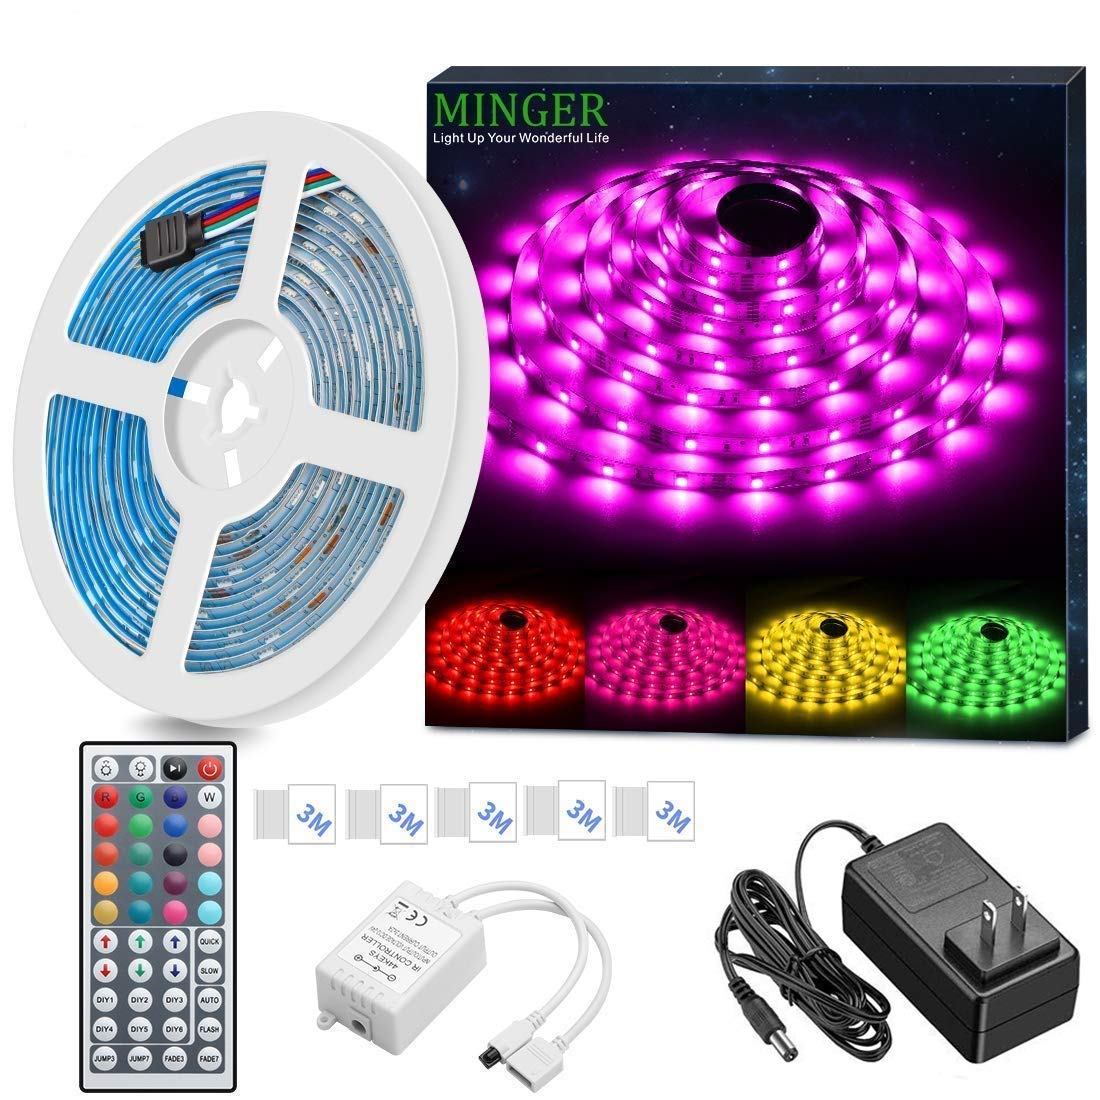 MINGER LED Strip Light Waterproof 16.4ft RGB SMD 5050 LED Rope Lighting Color Changing Full Kit with 44-keys IR Remote Controller & Power Supply Led Strip Lights for Home Kitchen Bed Room Decoration by MINGER (Image #1)